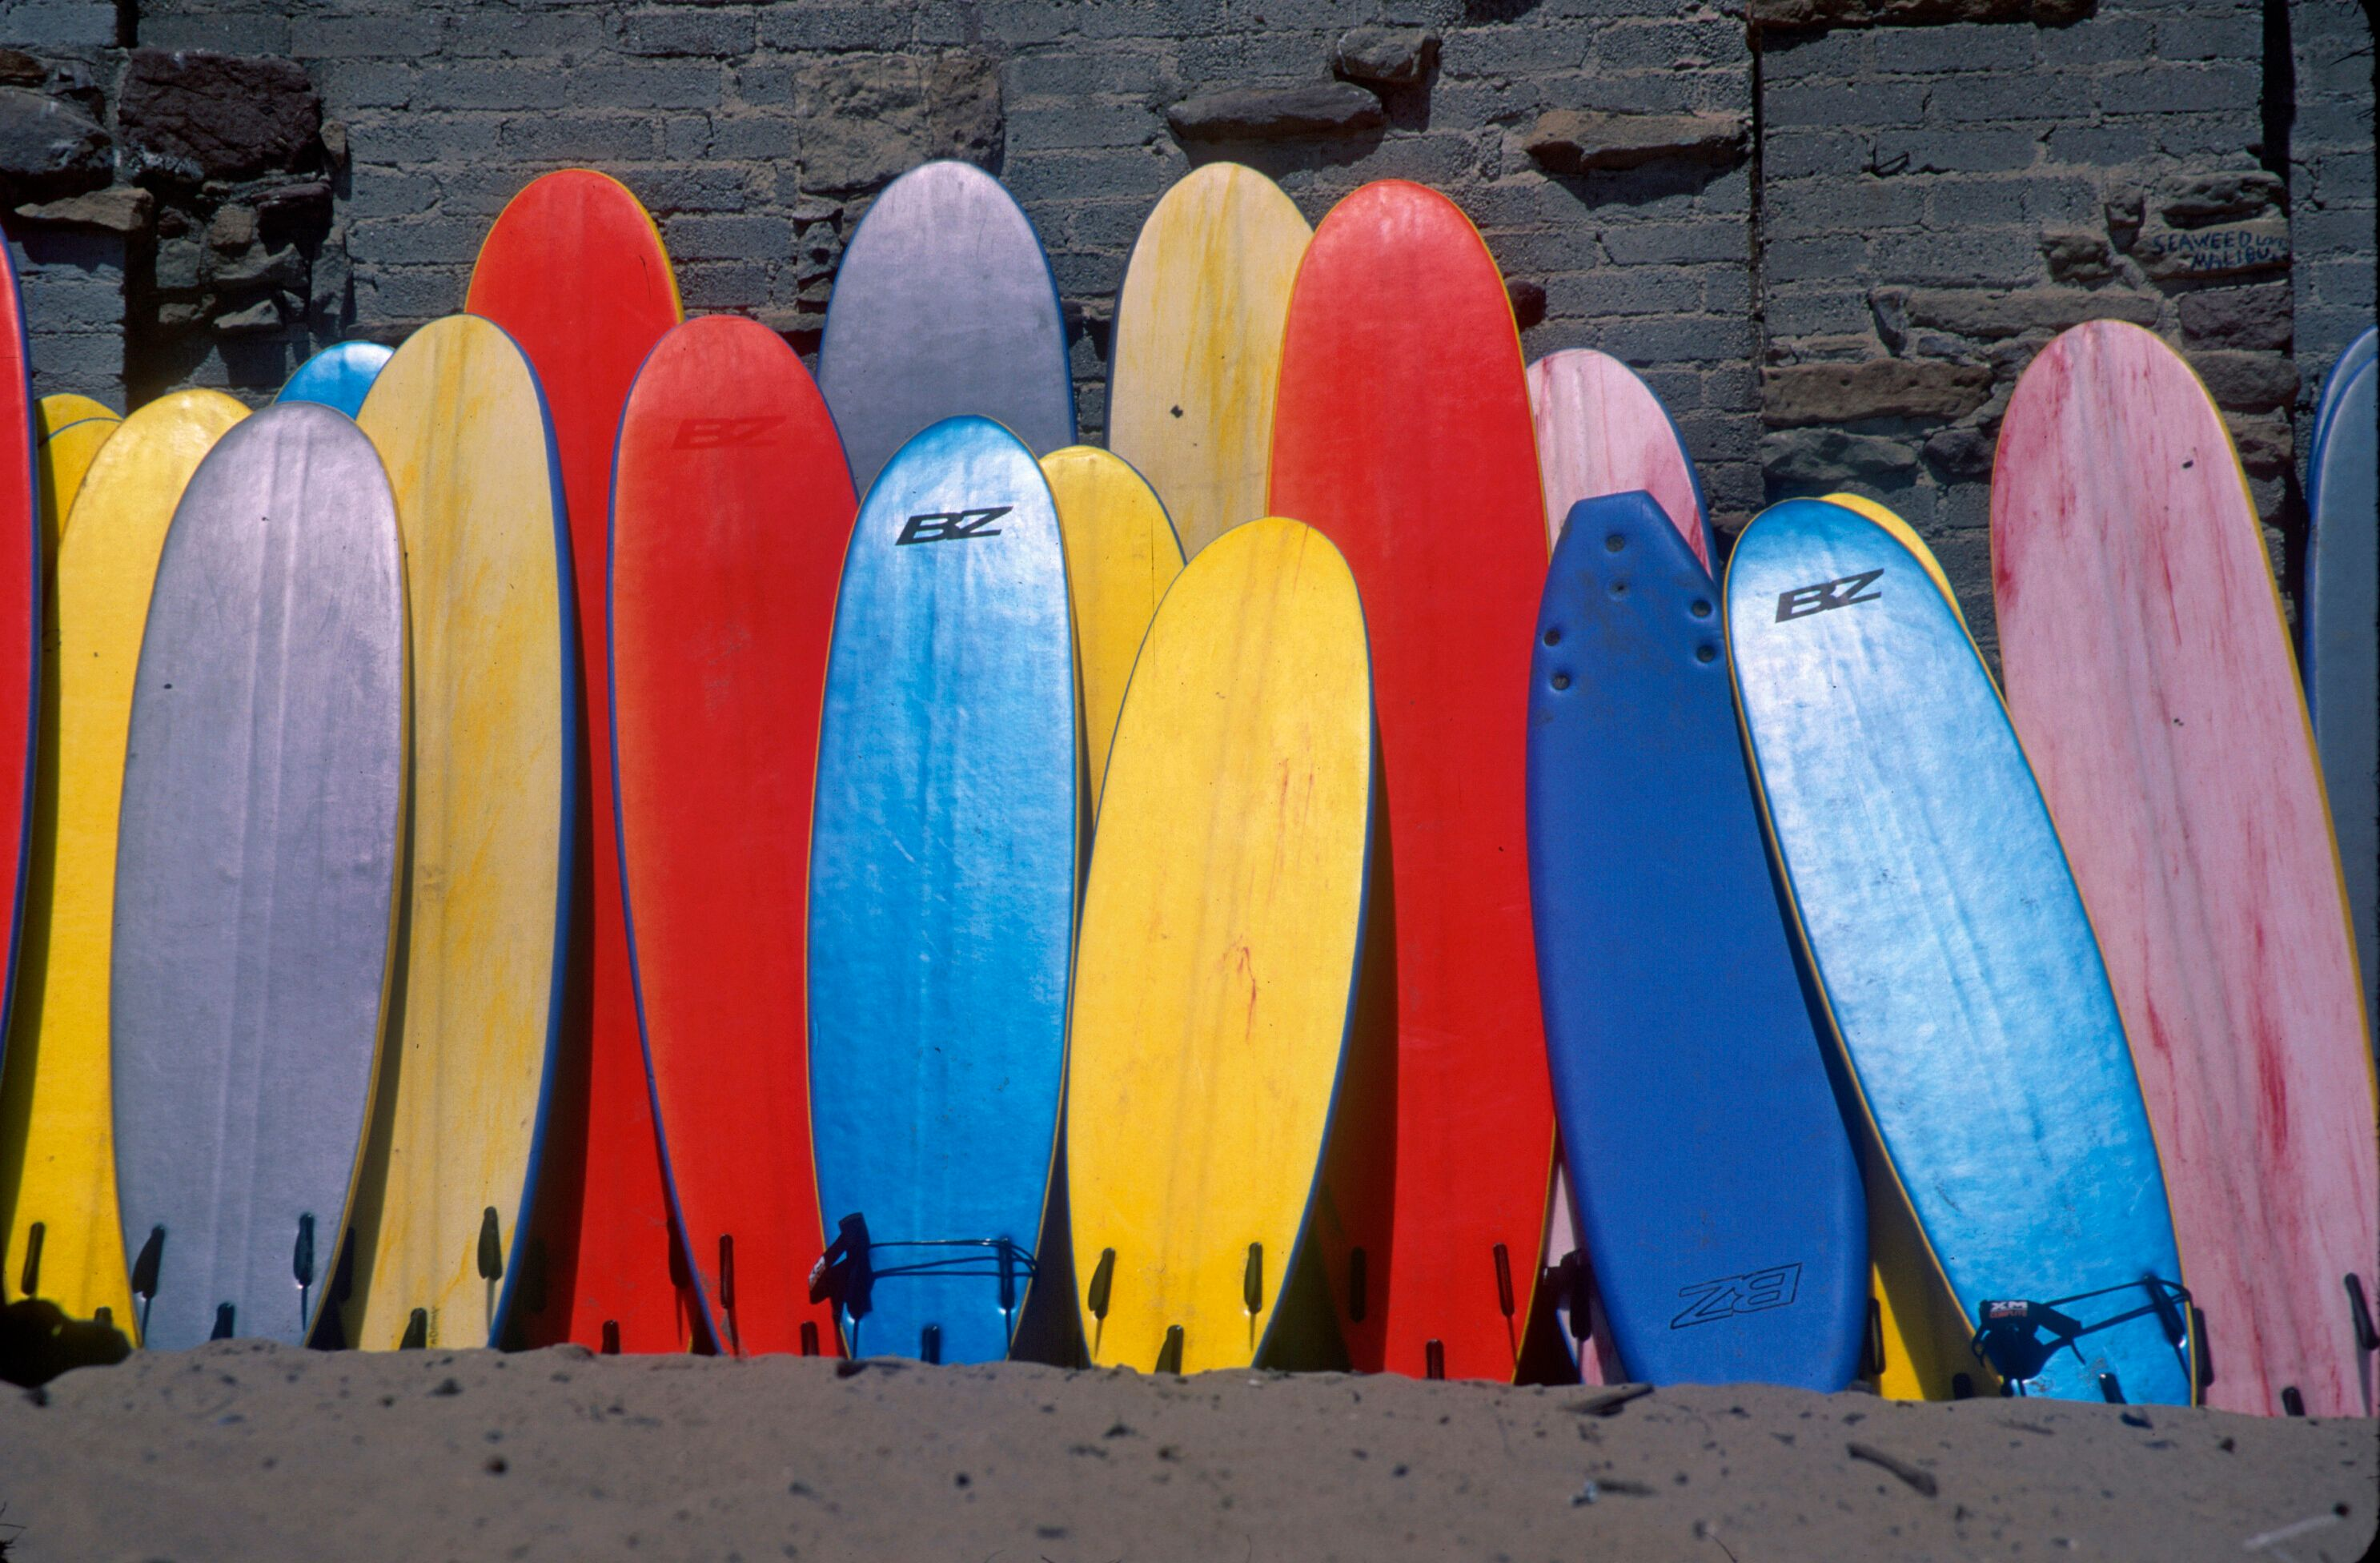 Surfboards, Malibu, California